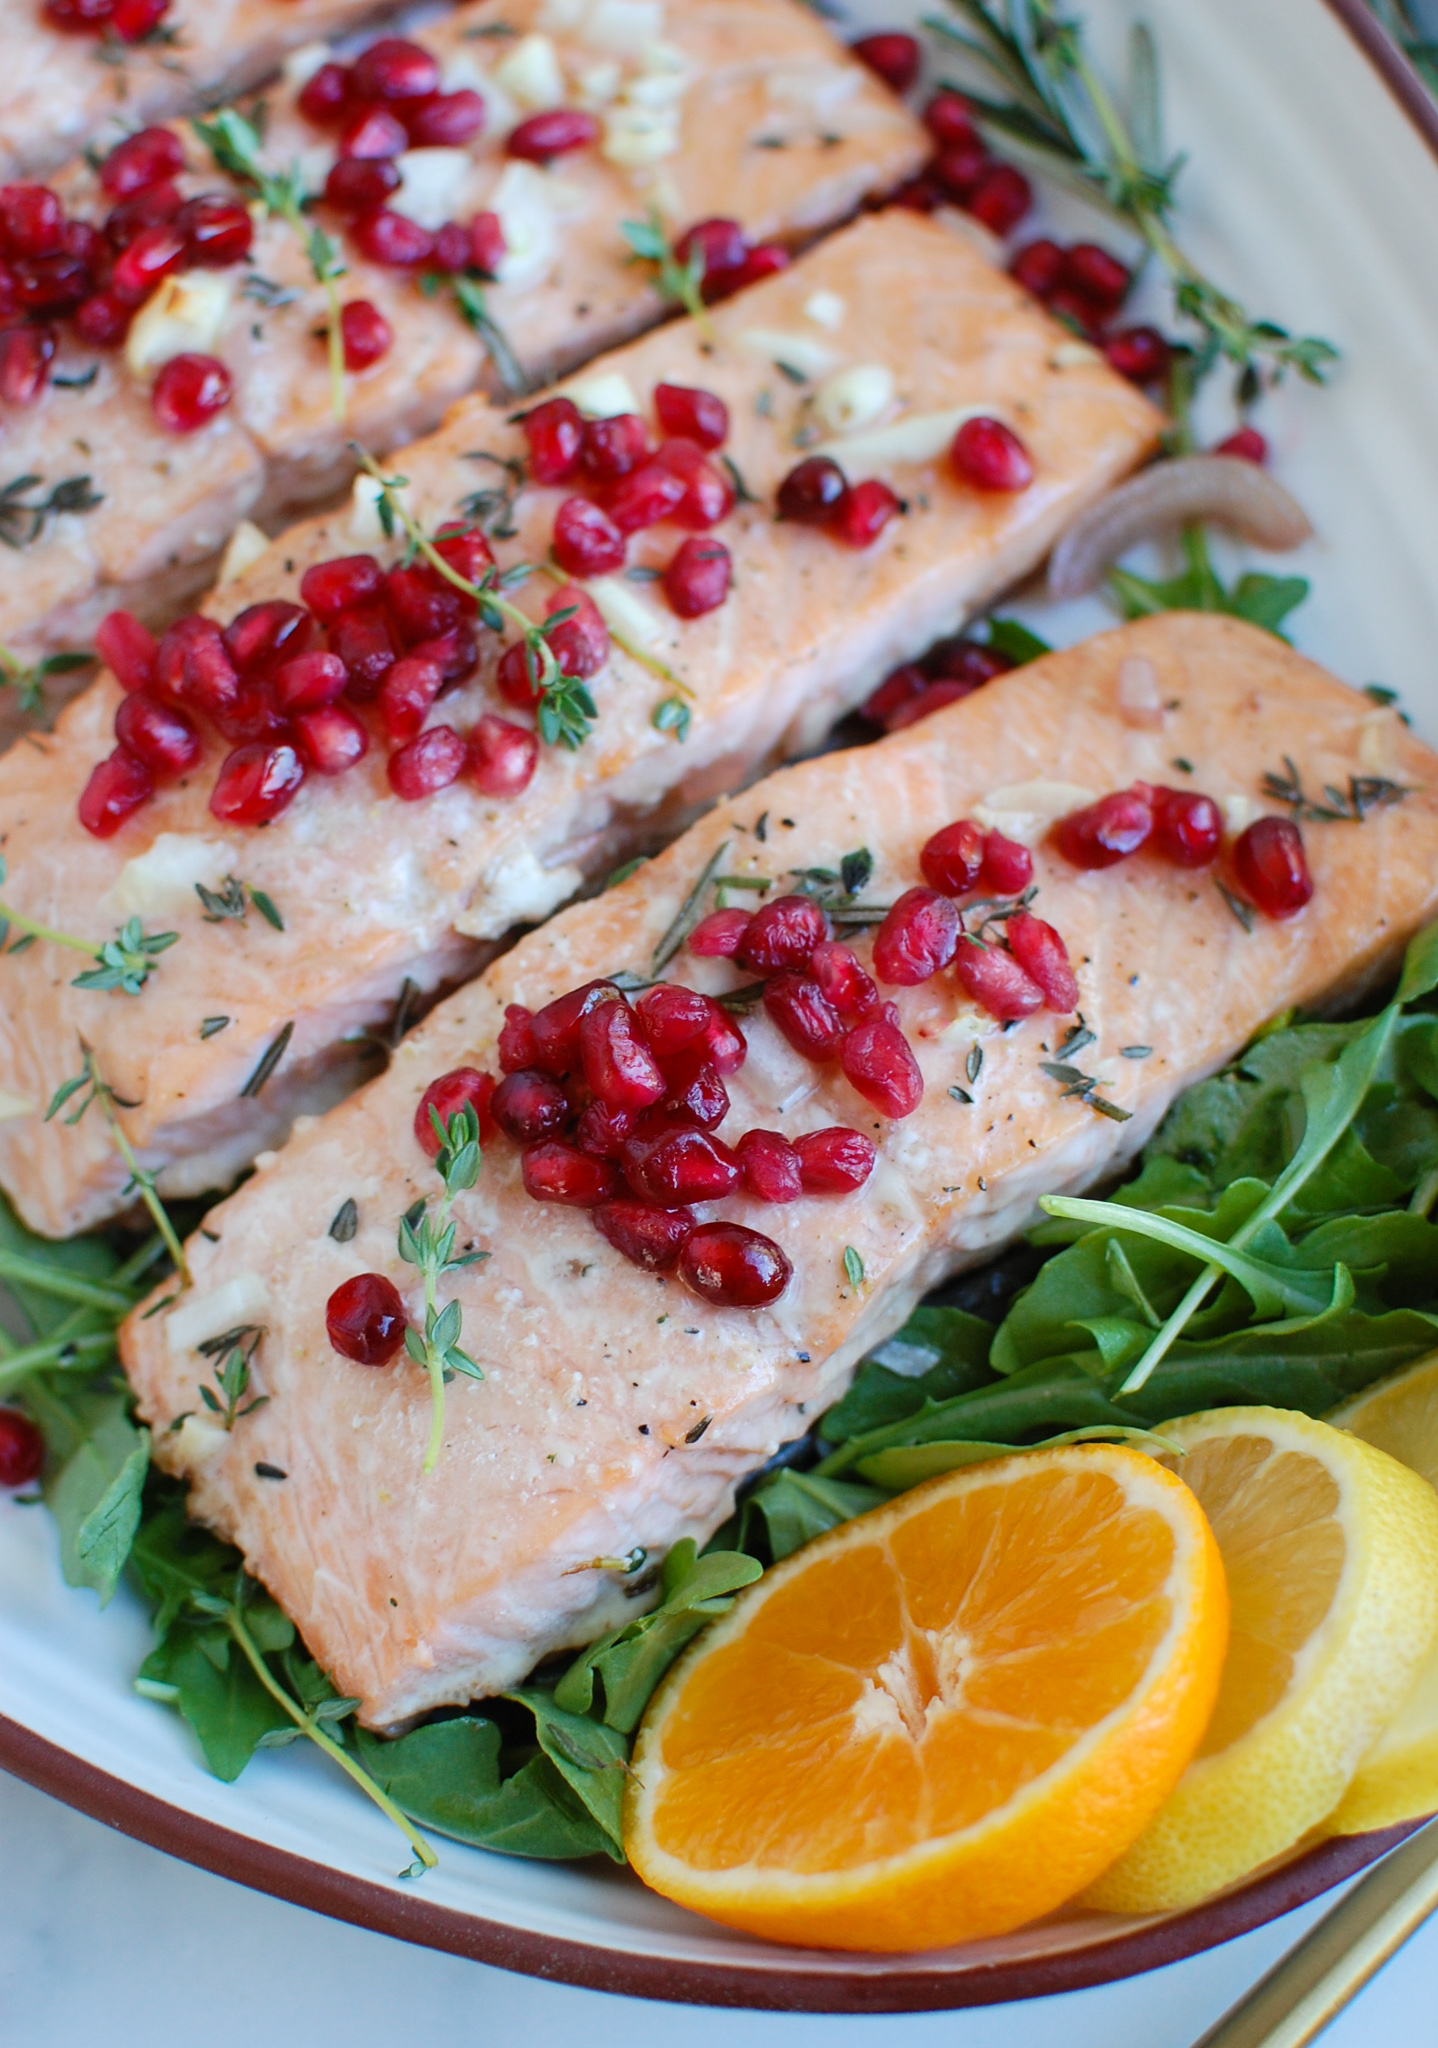 Honey Glazed Pomegranate Salmon with arugula